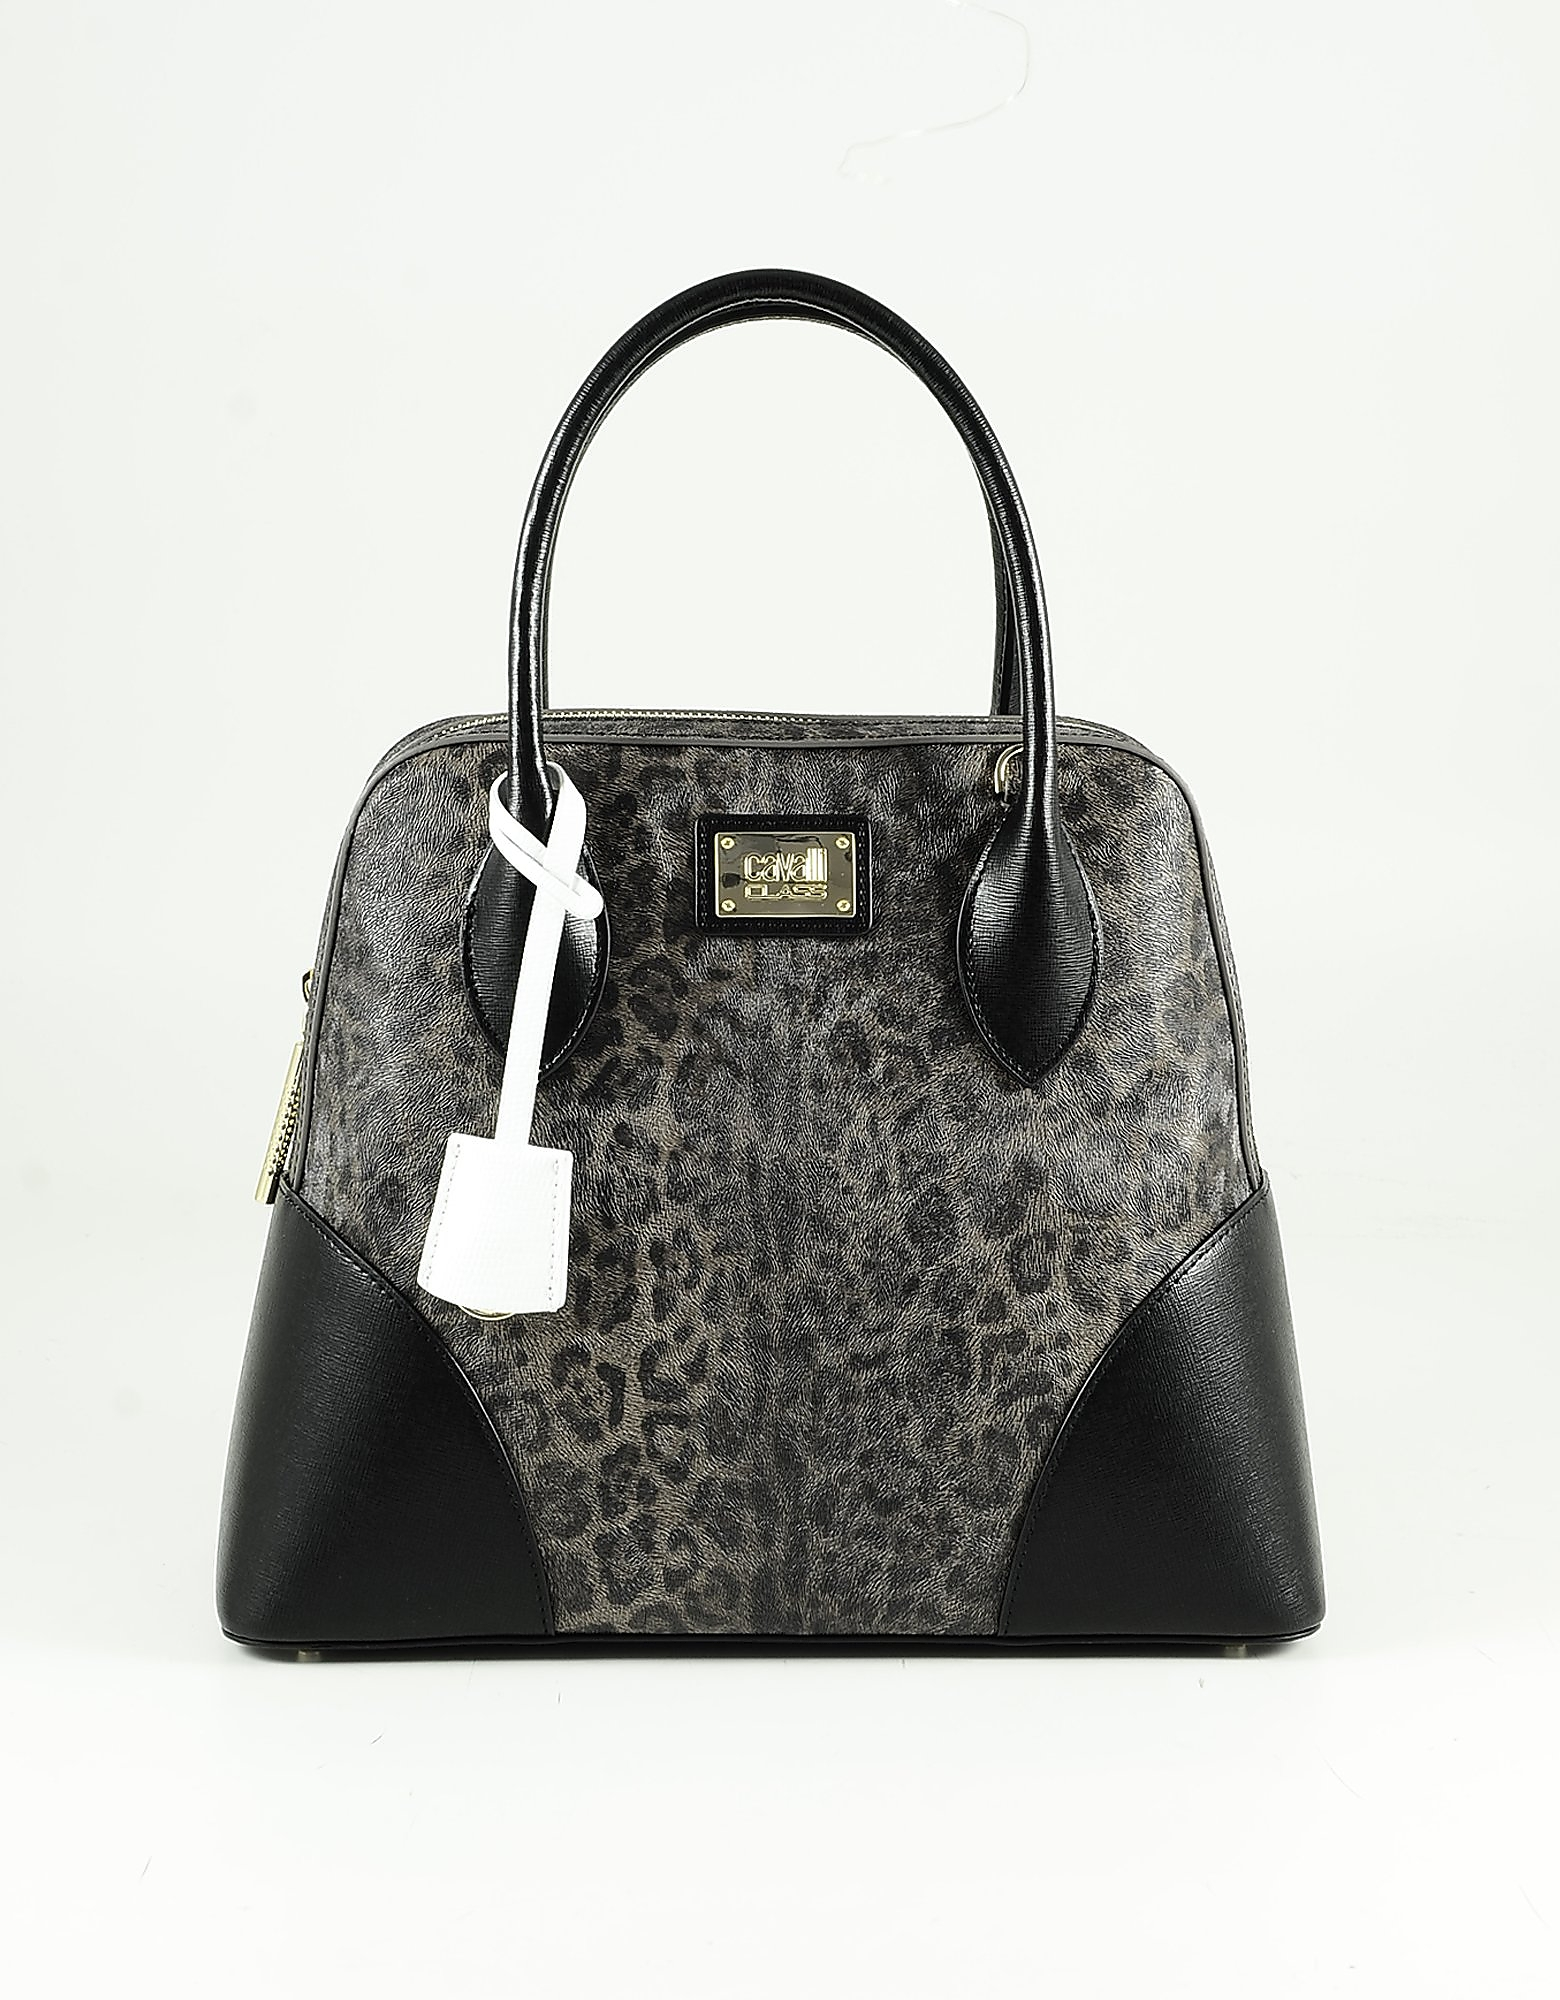 Class Roberto Cavalli Animal Print Eco-leather Bowler Bag In Black